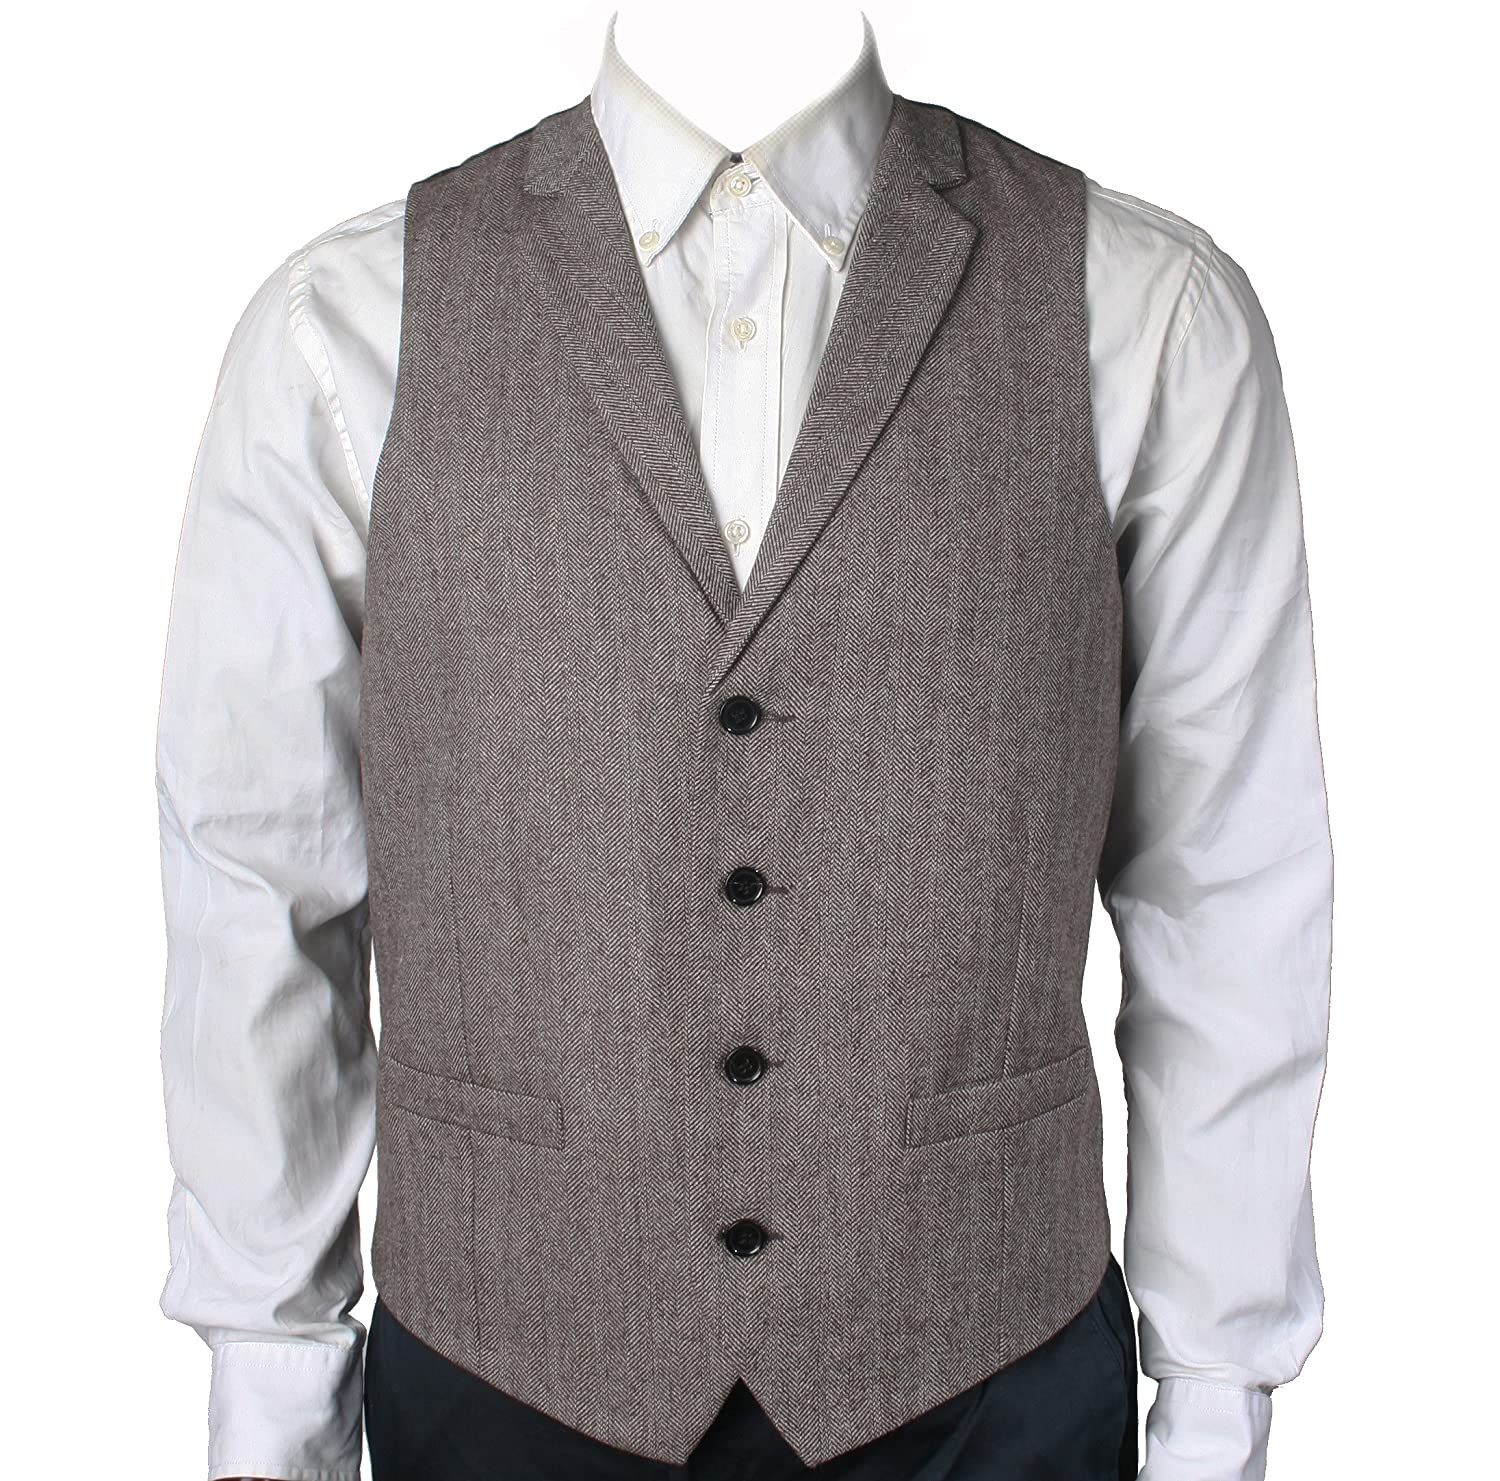 Men's Vintage Workwear – 1920s, 1930s, 1940s, 1950s Herringbone/Tweed Tailored Collar Suit Vest $37.00 AT vintagedancer.com